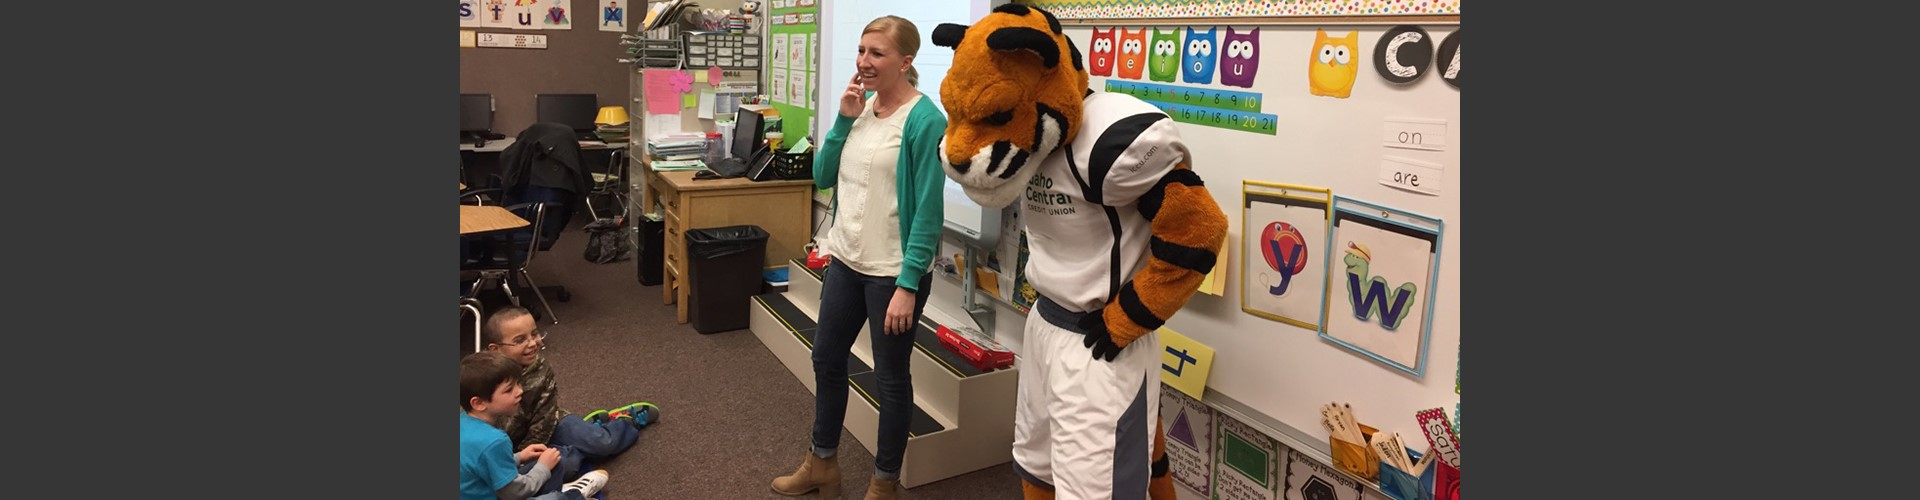 Idaho State University tiger mascot with teacher in front of students.